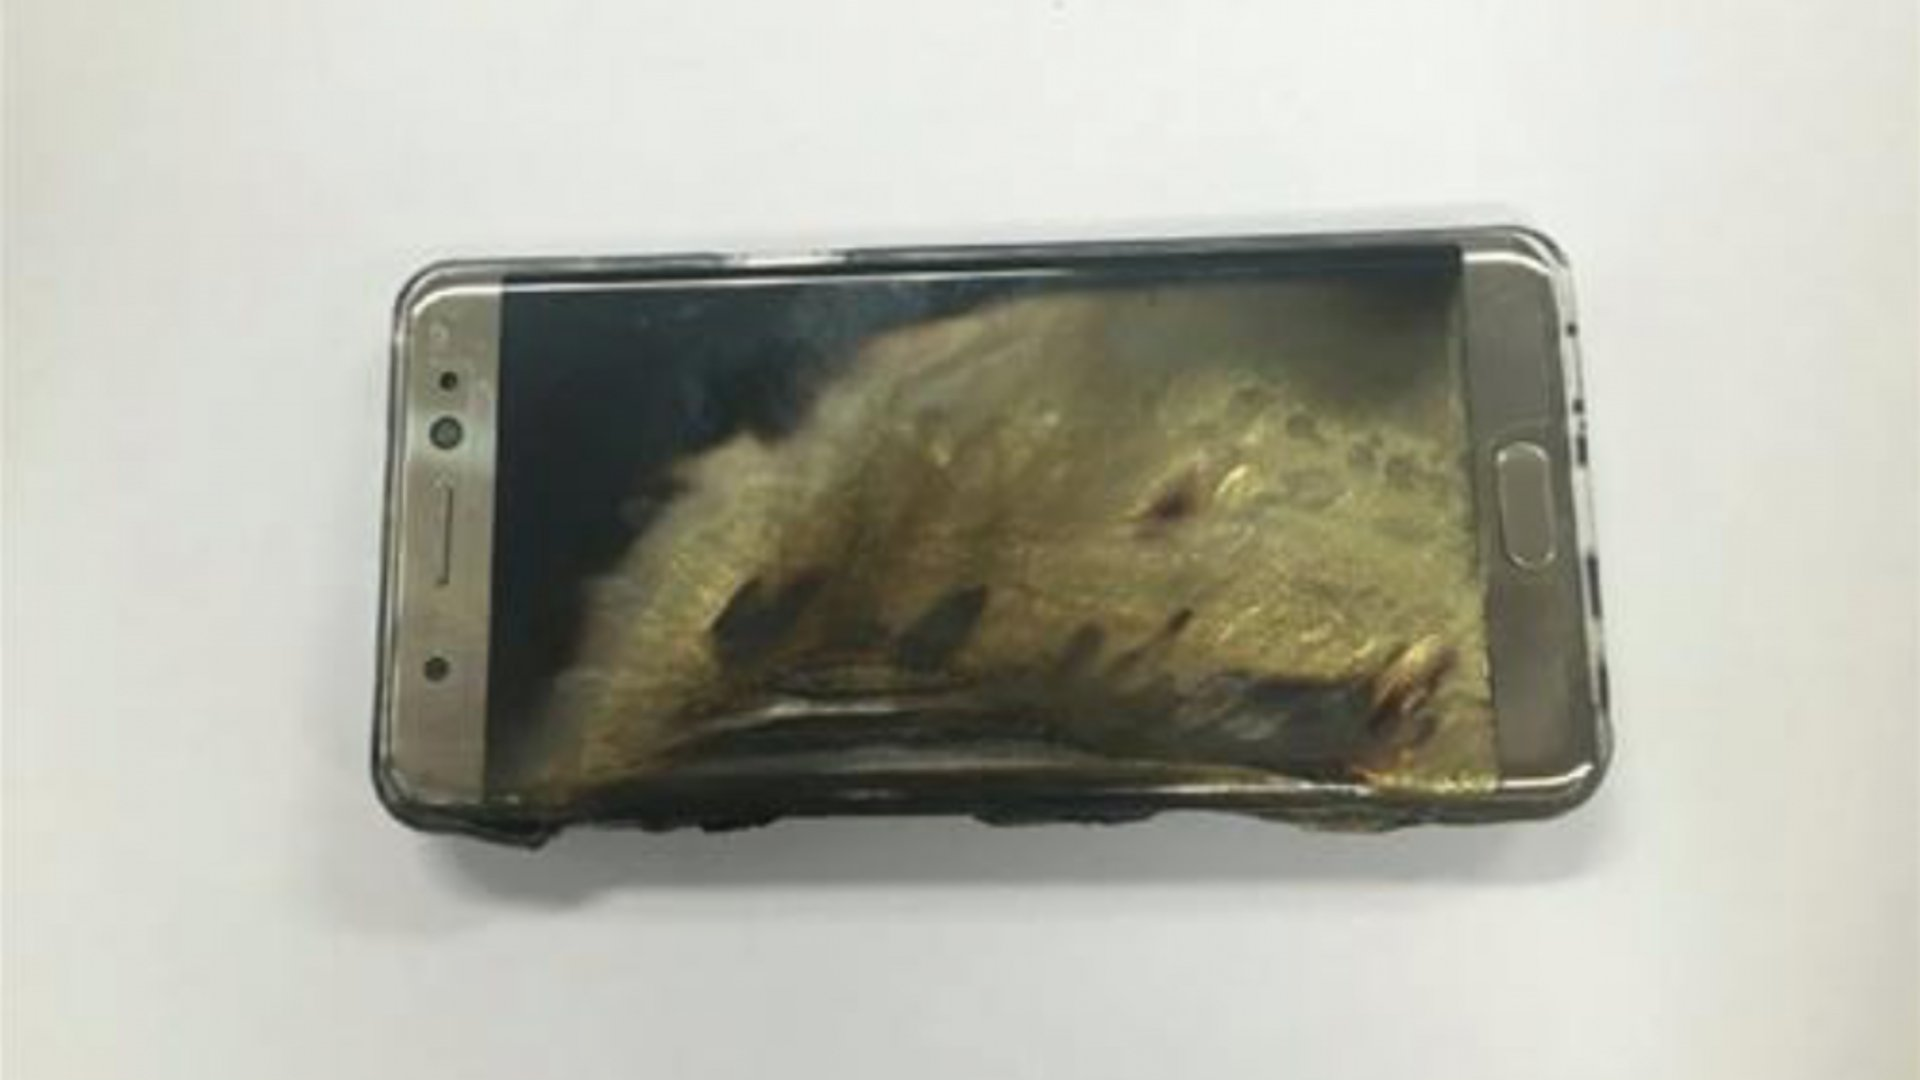 Samsung Galaxy Note 7 - Burned